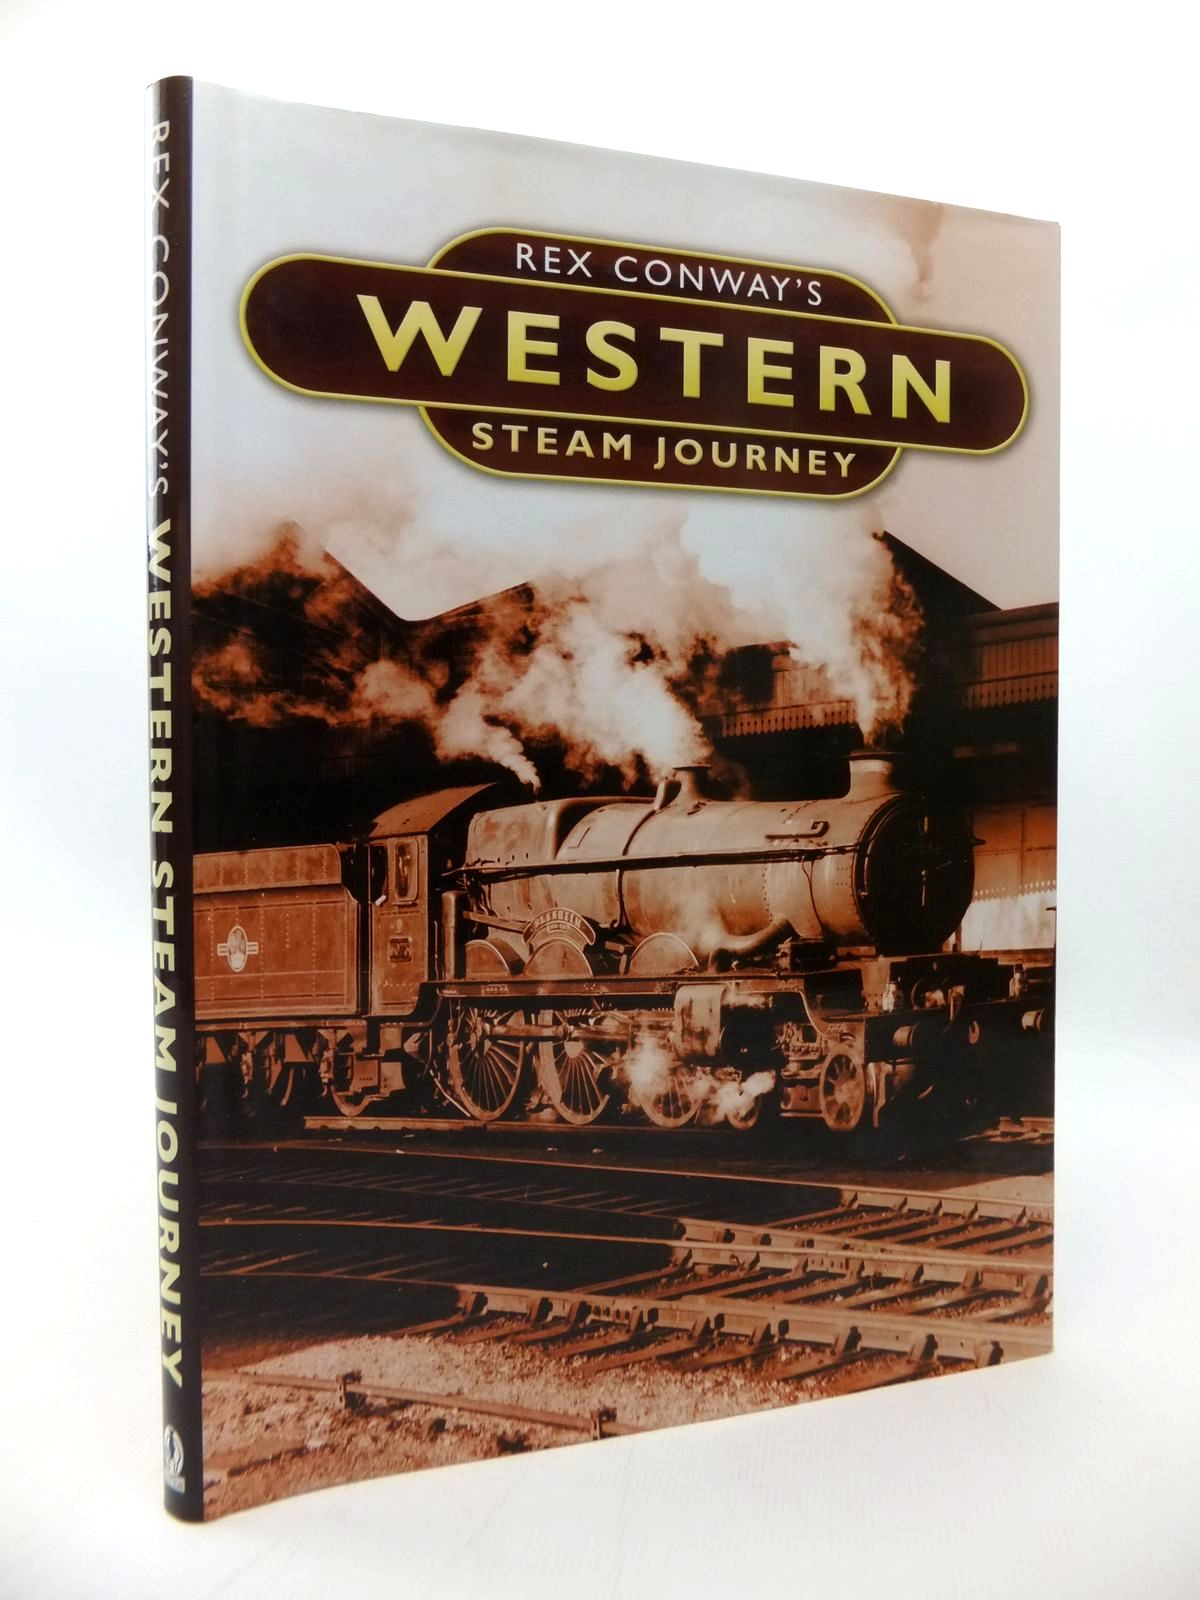 Photo of REX CONWAY'S WESTERN STEAM JOURNEY written by Conway, Rex published by The Local History Company (STOCK CODE: 1814251)  for sale by Stella & Rose's Books